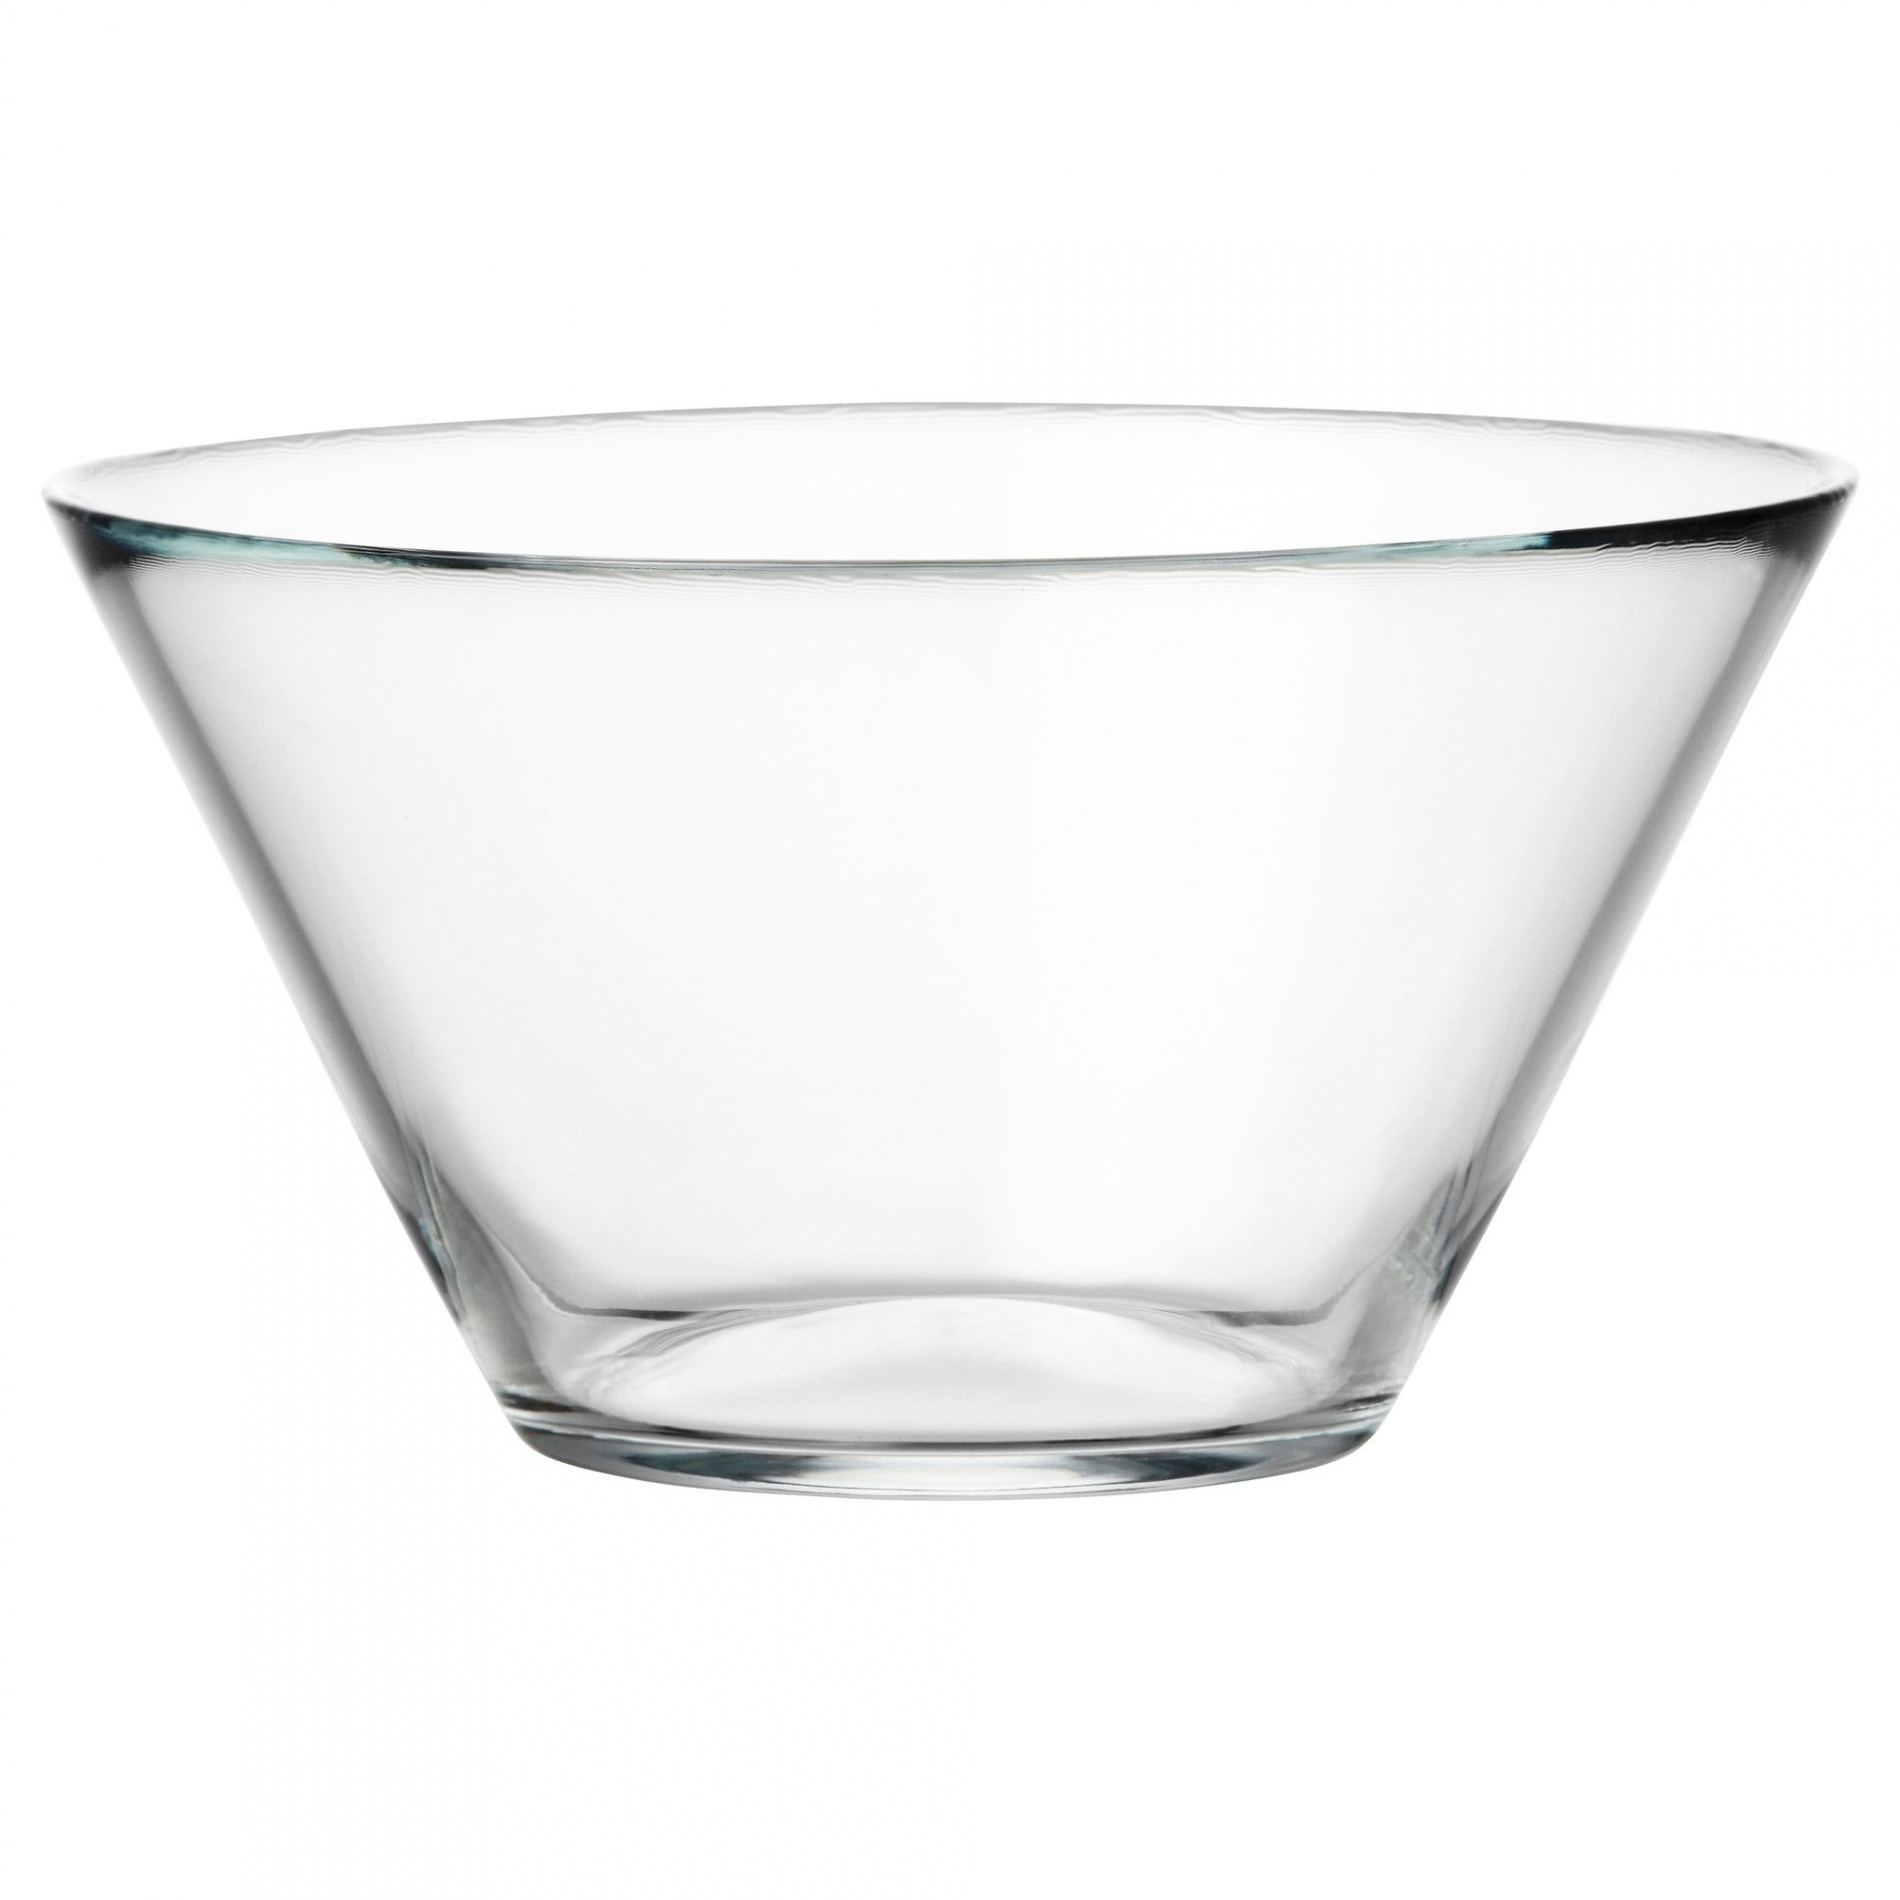 Verres Ikea Trygg Serving Bowl Ikea 1 99 1 For Mom Ikea Verre Shooter